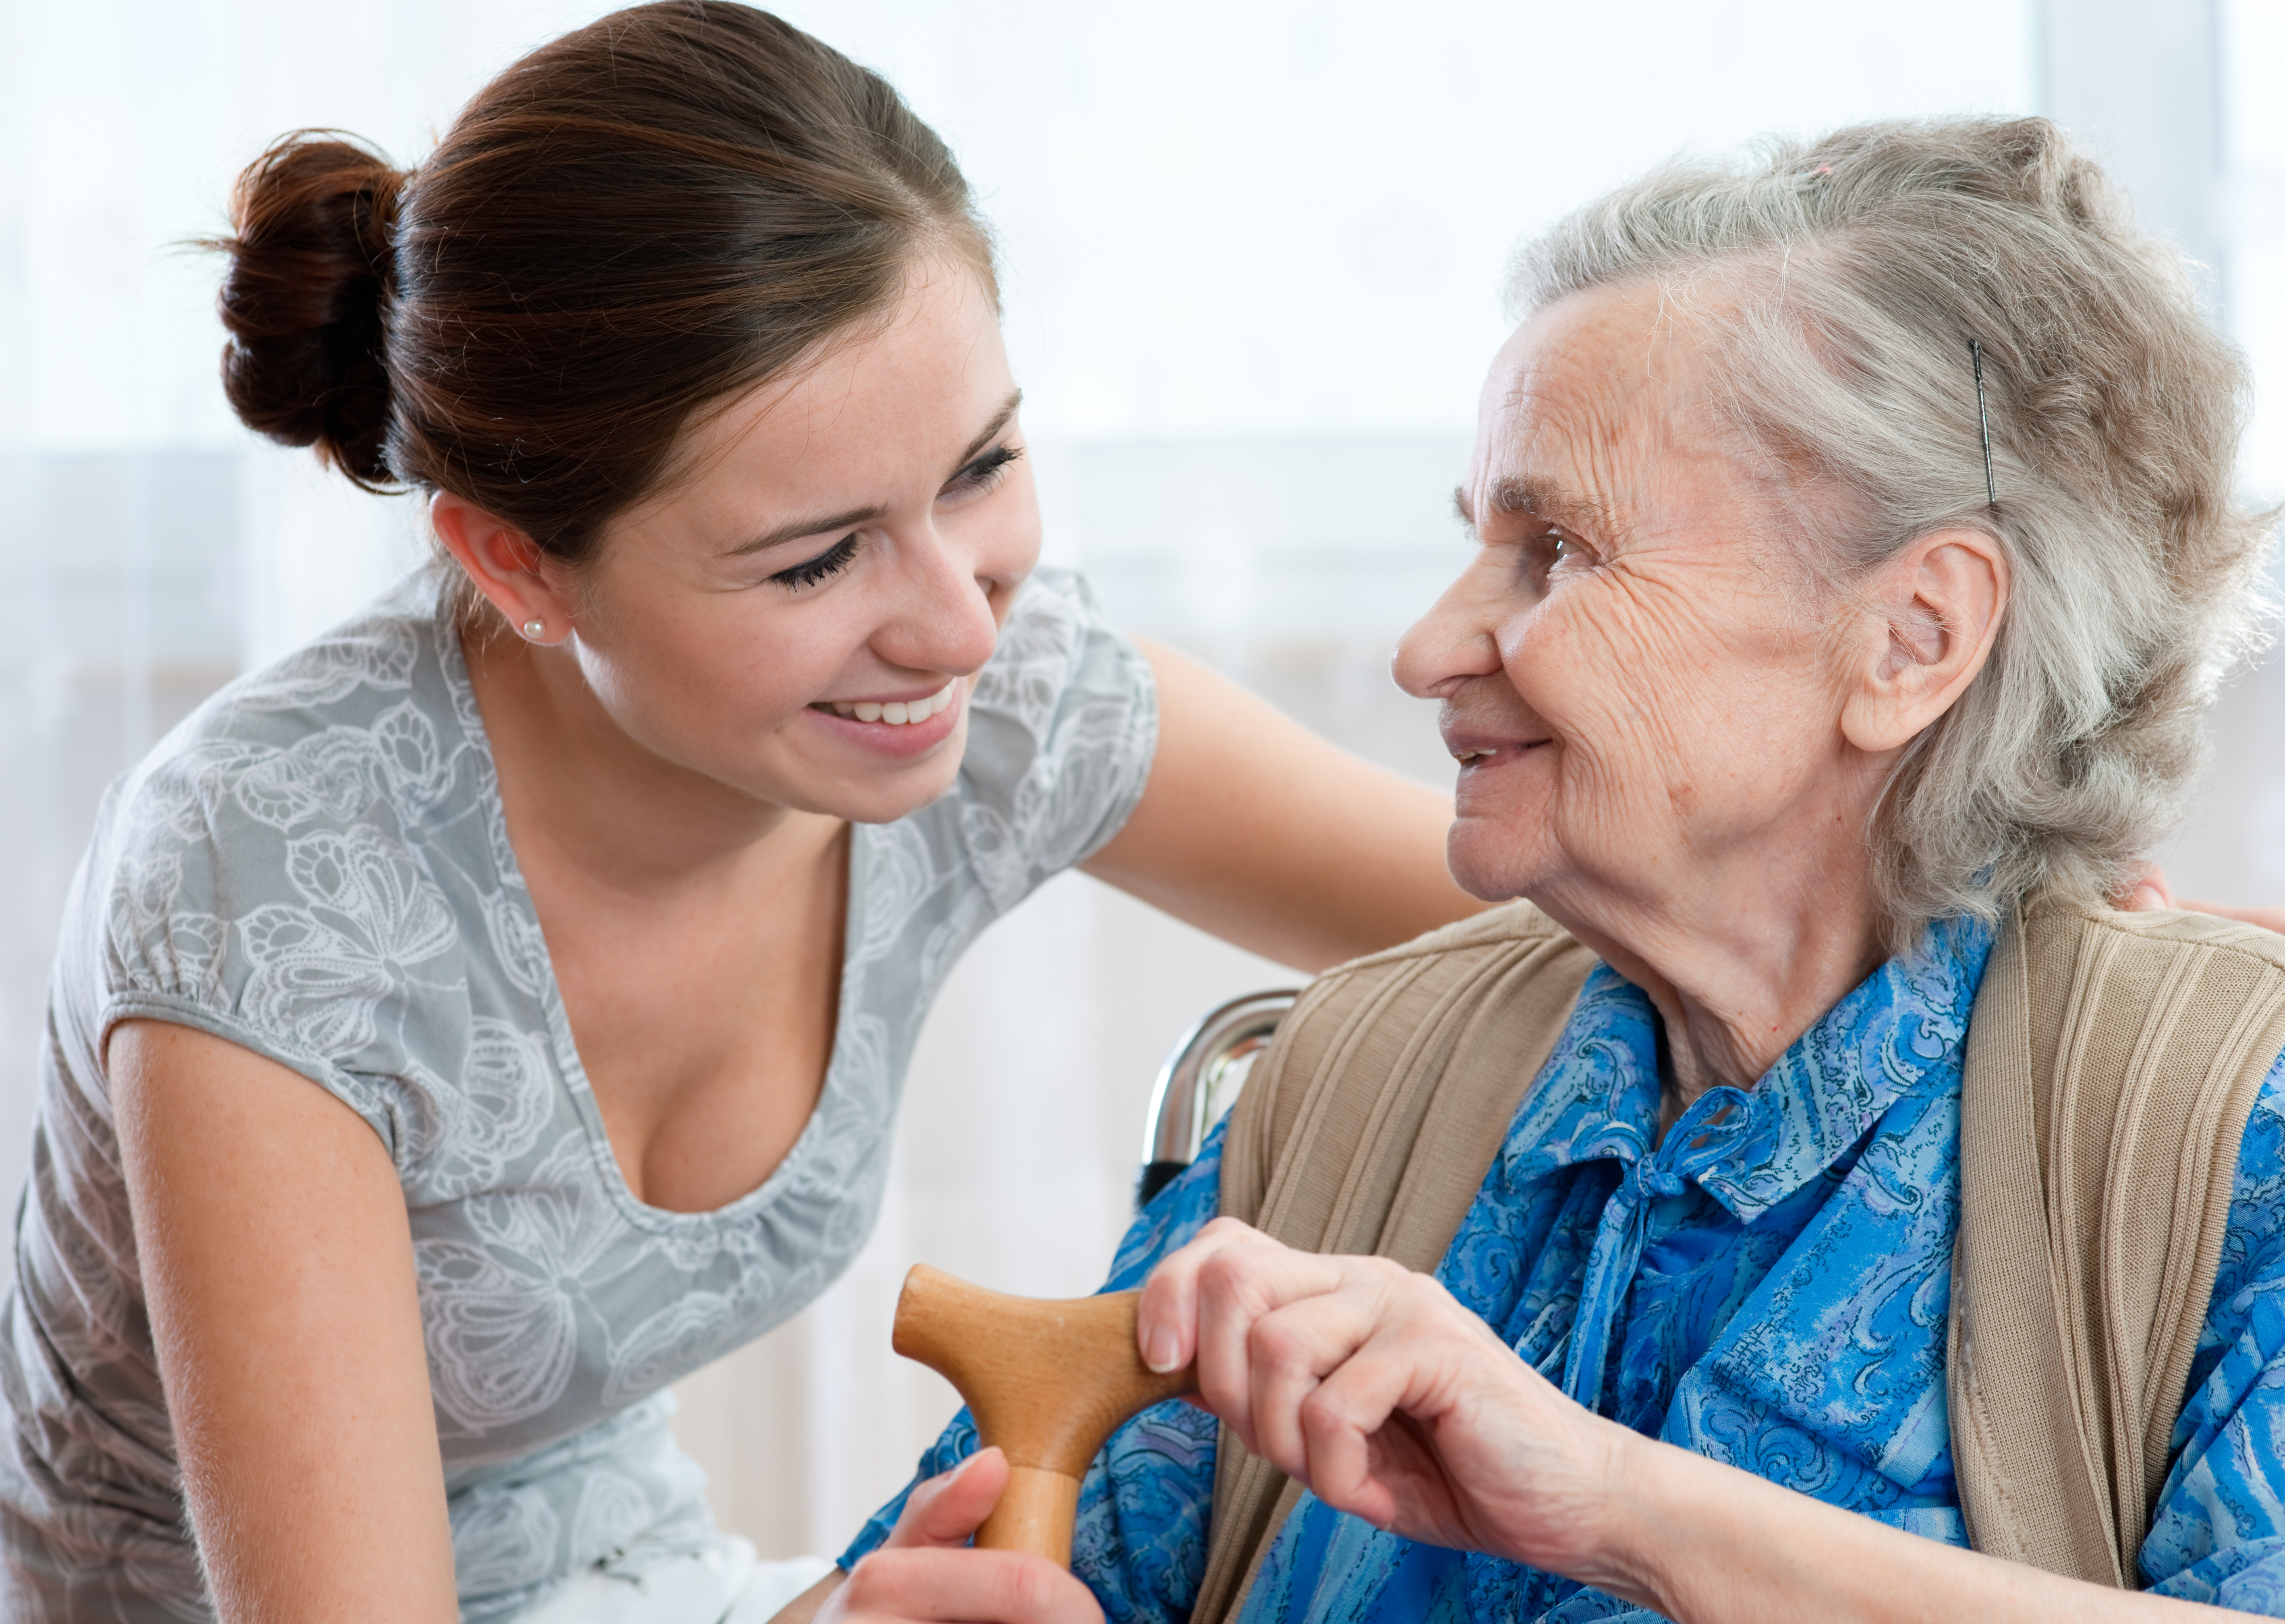 Palliative care physicians training is implemented in USA for improve palliative care quality